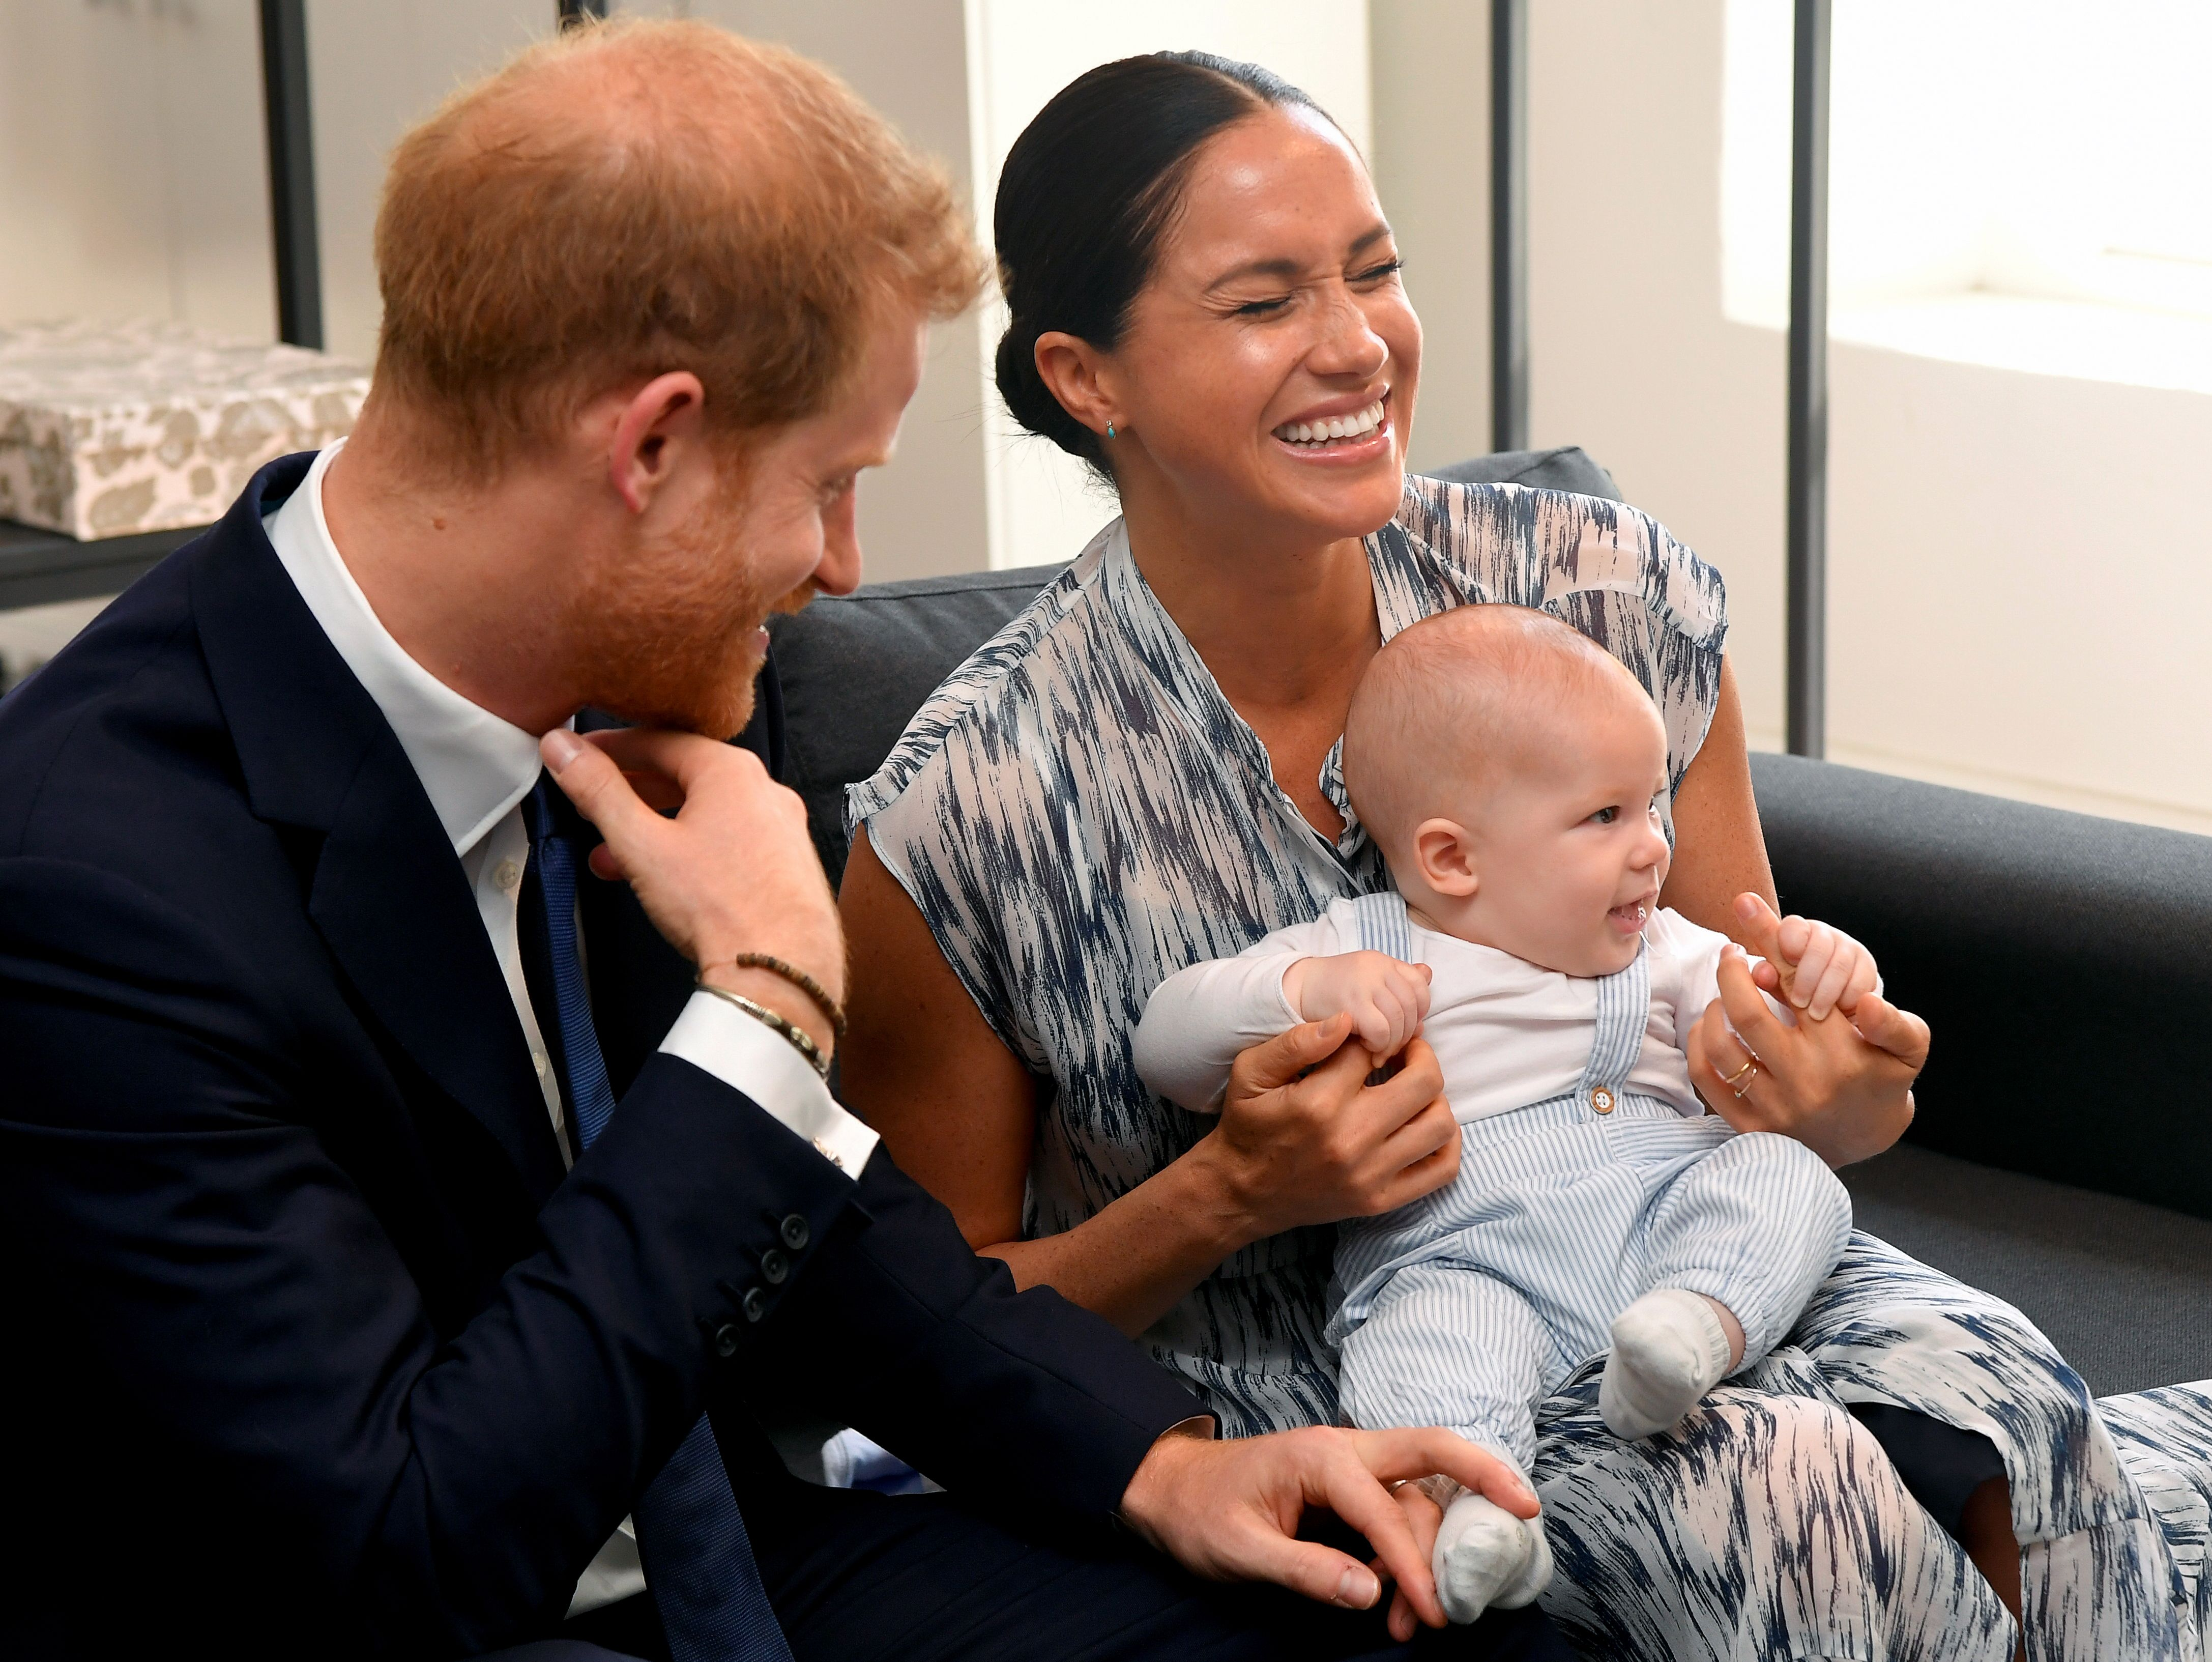 Prince Harry, Meghan Markle and their son Archie Mountbatten-Windsor at the Desmond & Leah Tutu Legacy Foundation in Cape Town, South Africa | Photo: Toby Melville - Pool/Getty Images